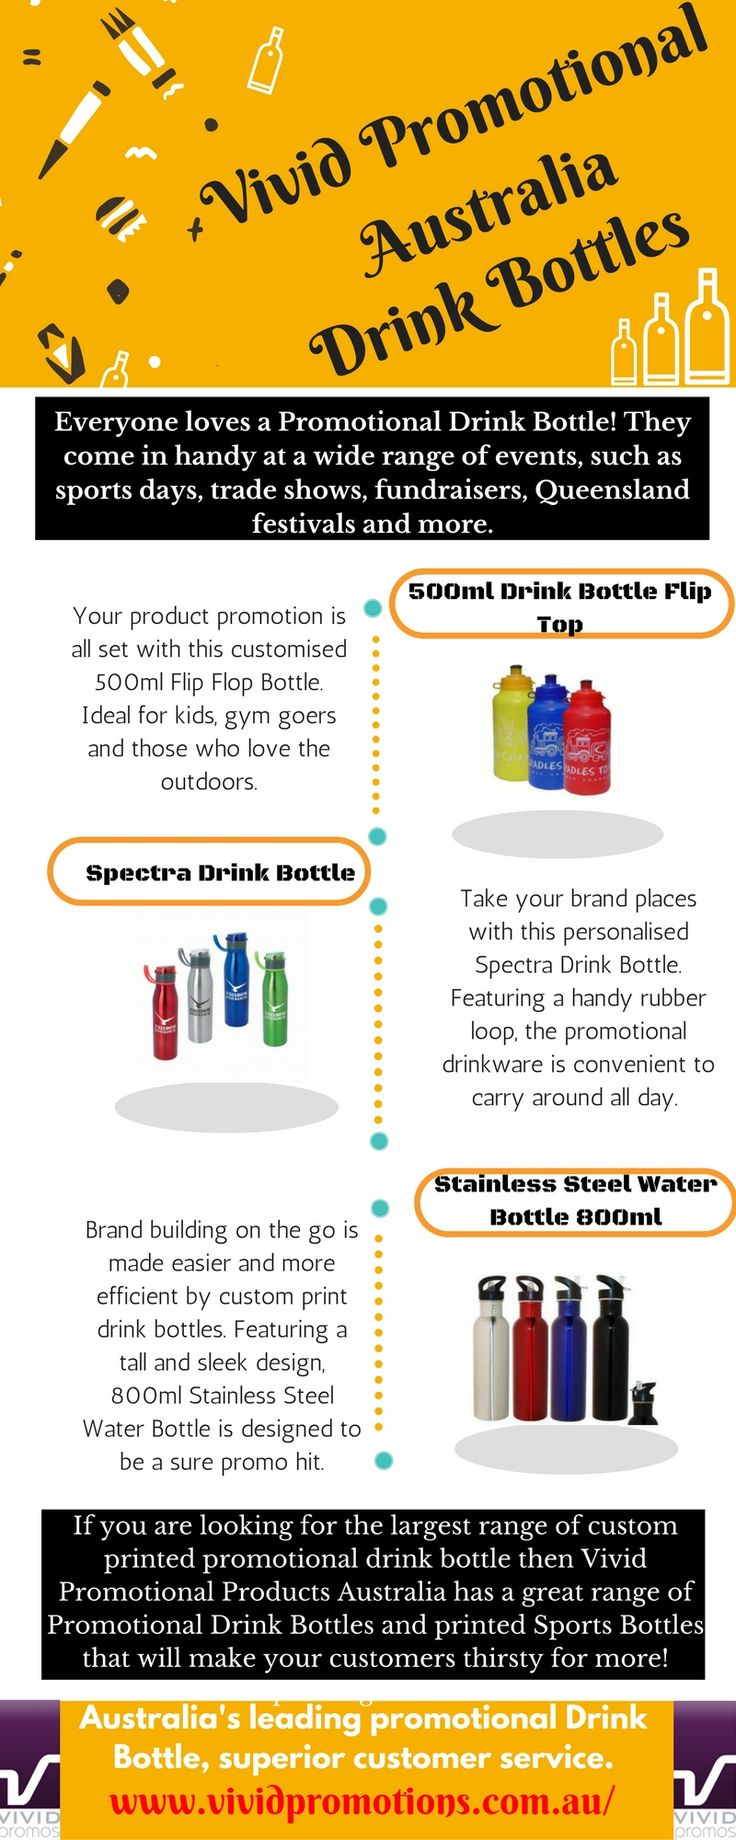 Find out customised Drink Bottle or many other promotional products at Vivid Promotions Australia to promote your brand. Here at vividpromotions.com.au we have a massive range of drink bottles including running water bottles, blender bottles and sports drink bottles and more. #PromotionalProductsInAustralia #MerchandiseItems #PromotionalDrinkBottles #PersonalisedPrintedProduct #PromotionalWaterBottle #MetalDrinkBottles #AluminiumBottles